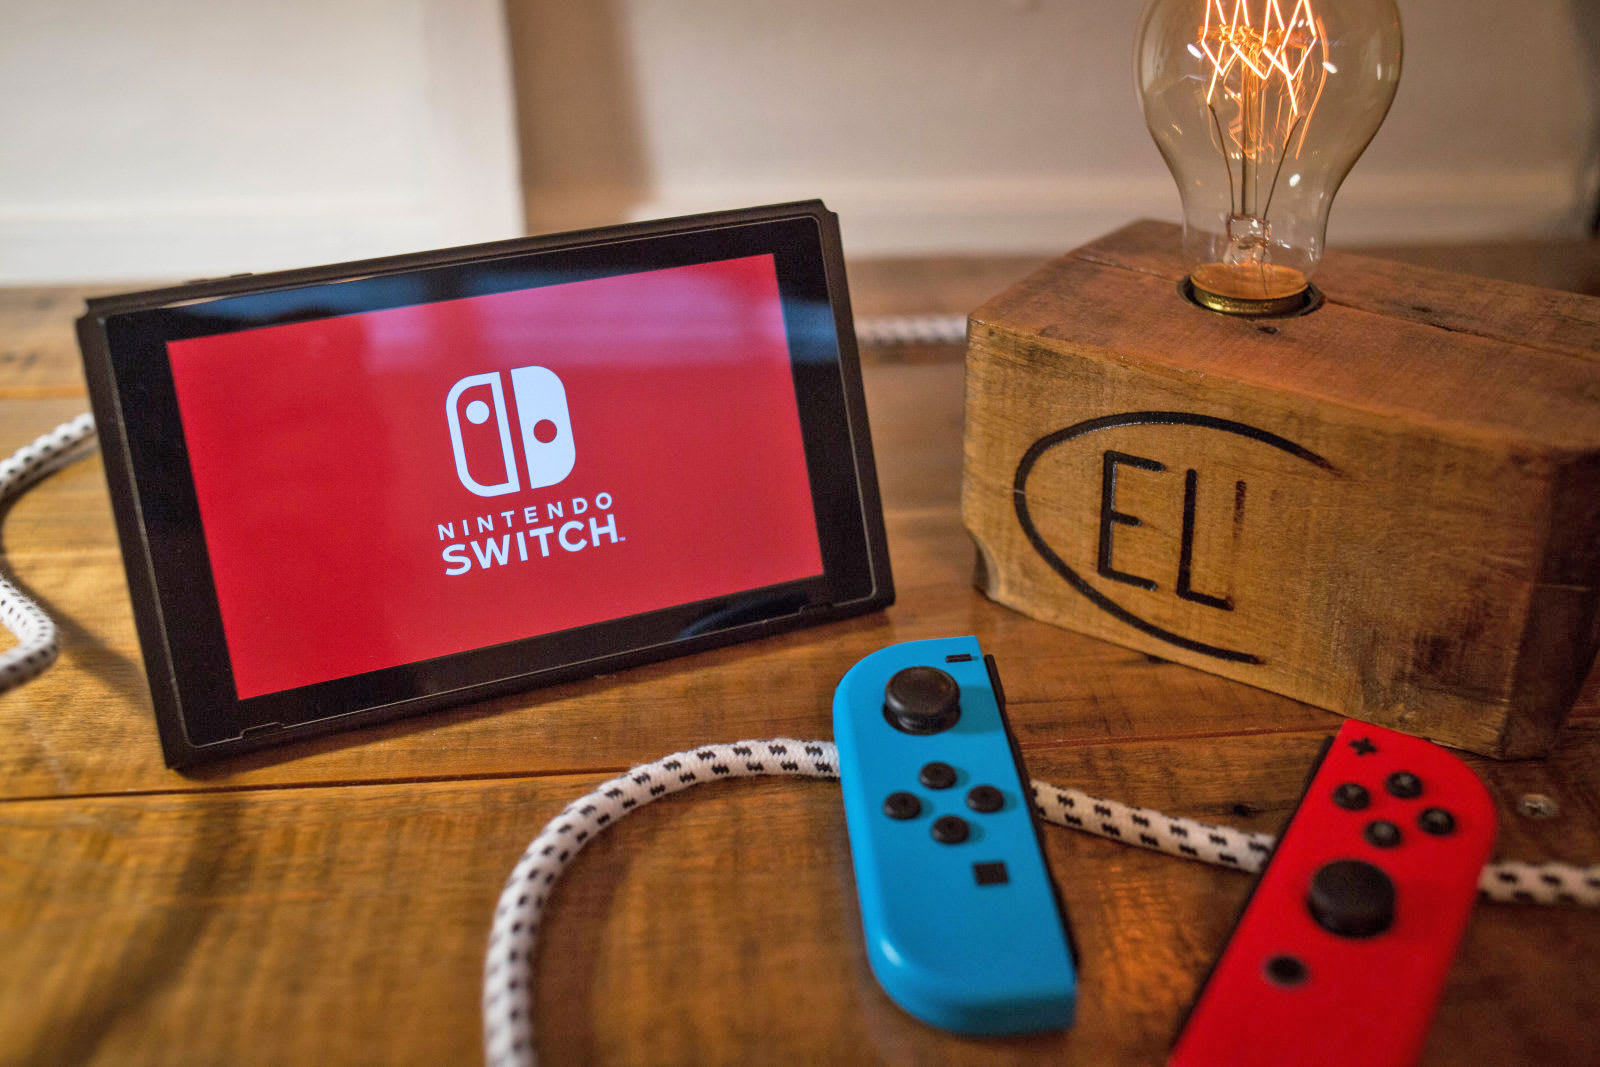 Nintendo's Switch Online service launches September 18th